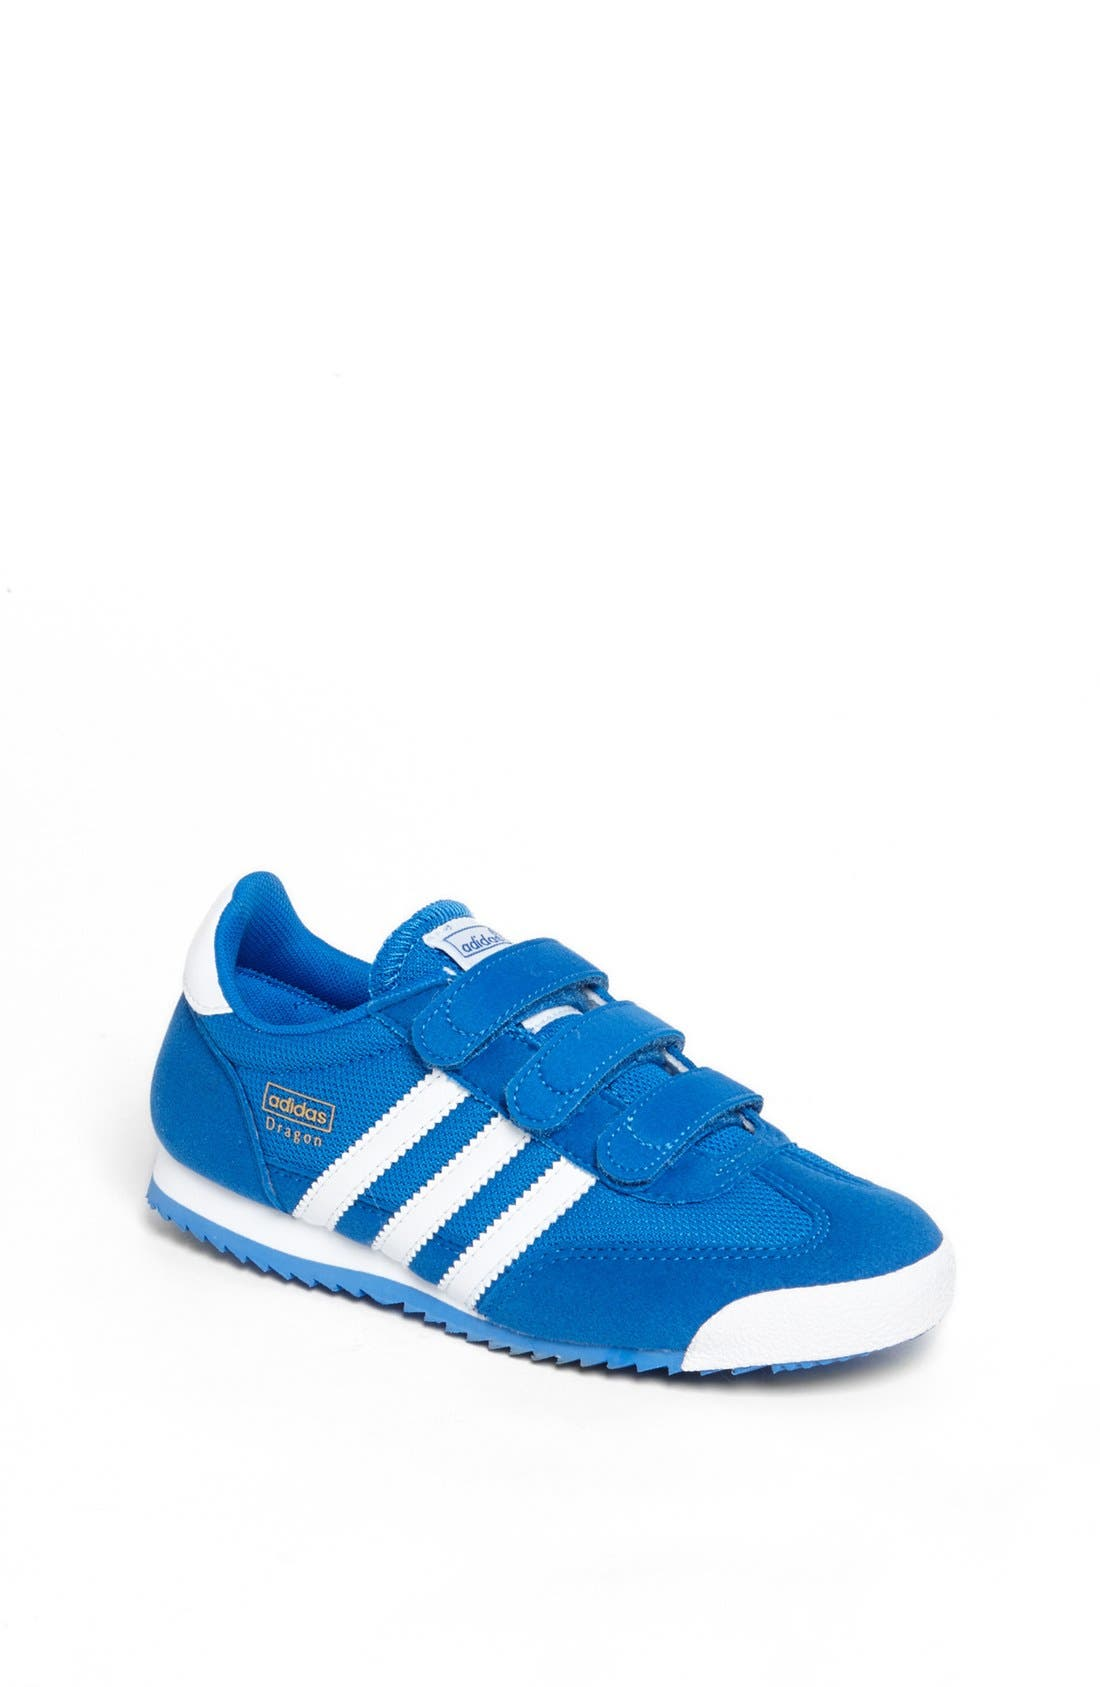 Alternate Image 1 Selected - ADIDAS DRAGON CF LK/BK BOYS